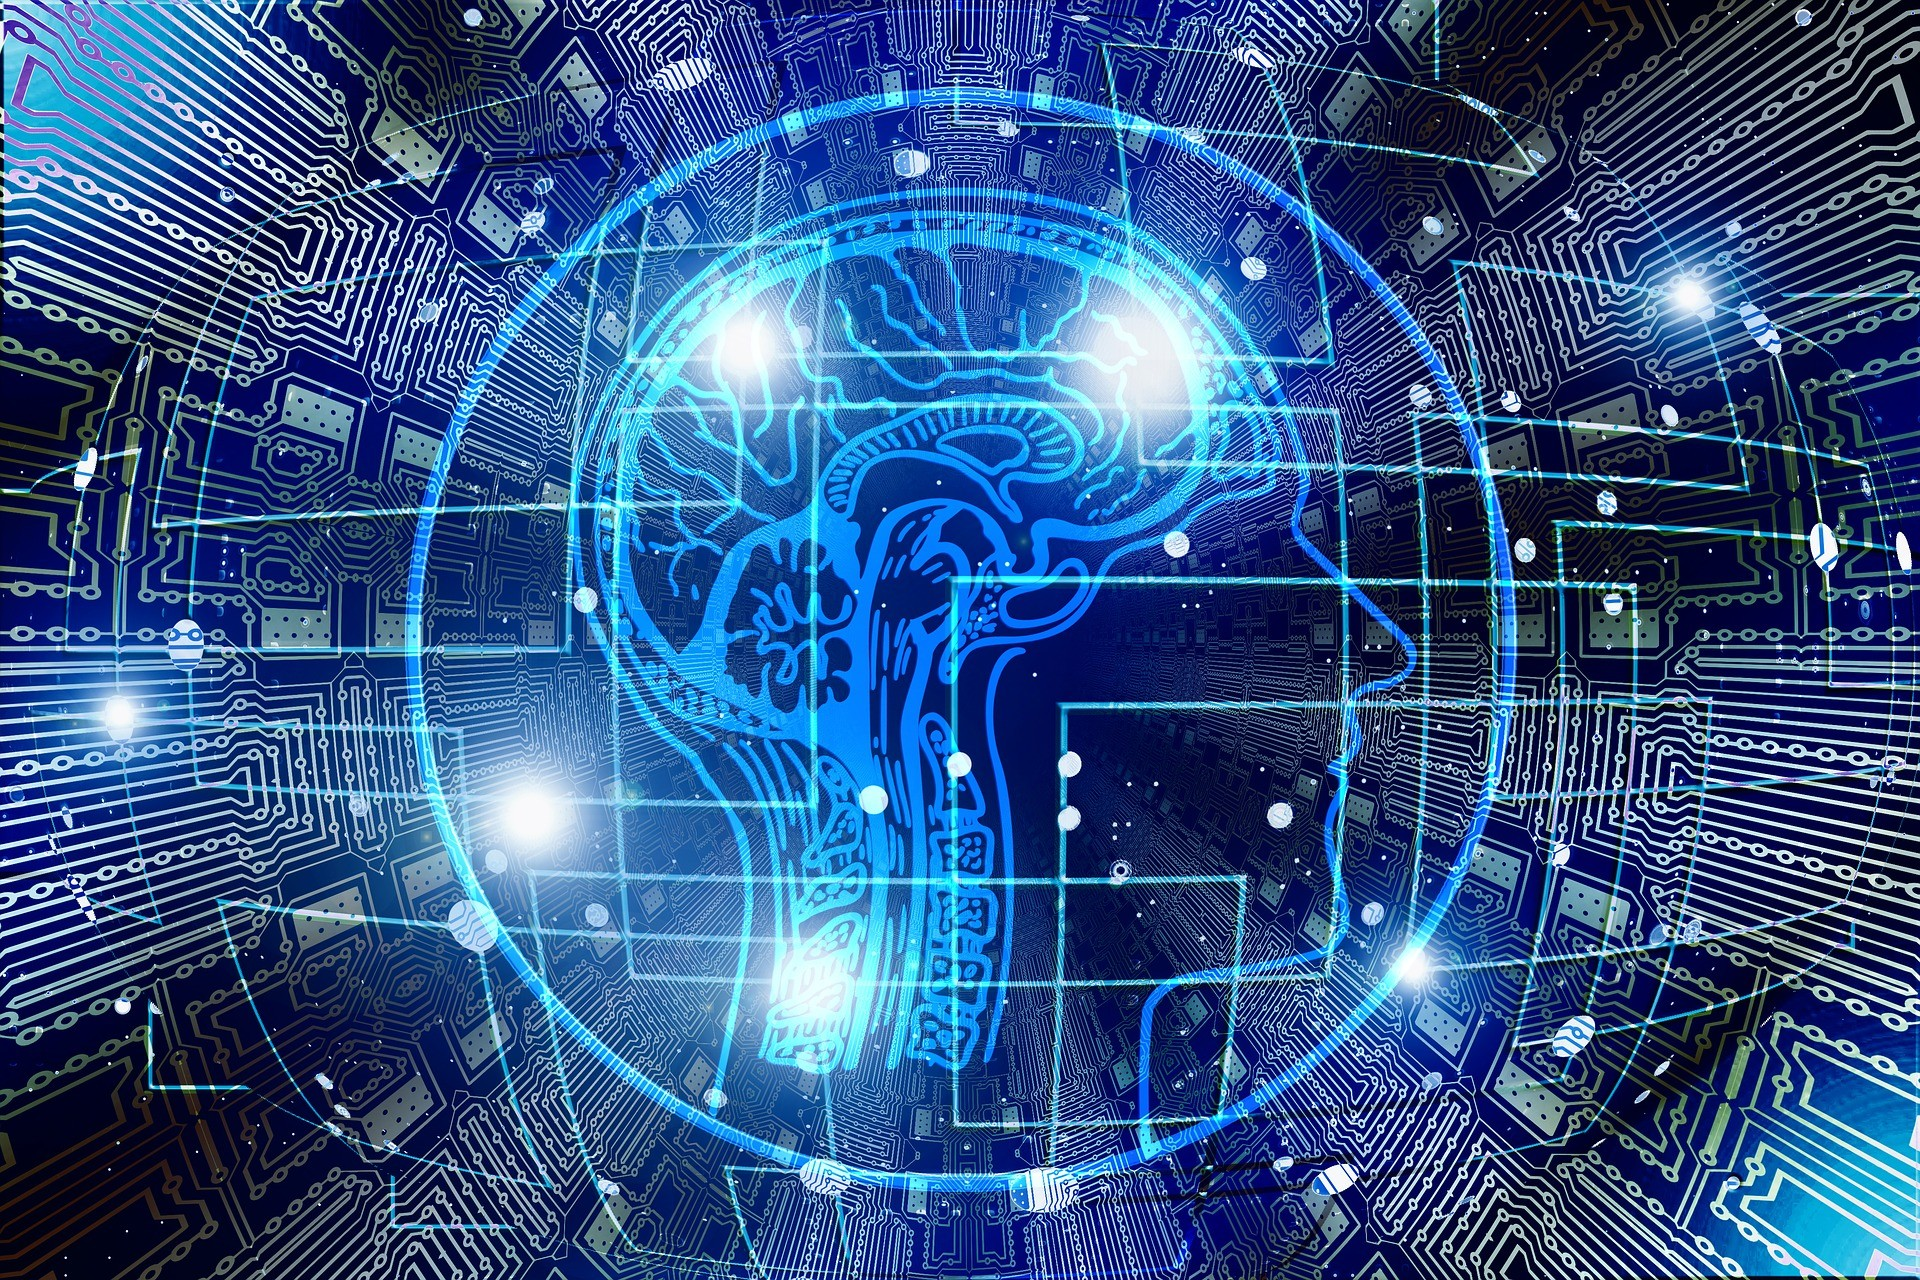 Artificial intelligence, Intelligence, Insilico Medicine, Machine learning, Computer Science, Deep learning, Cognitive computing, Human, Industry, Research, esportes e inteligencia artificial, technology, structure, metropolis, light, architecture, world, electricity, energy, space, symmetry